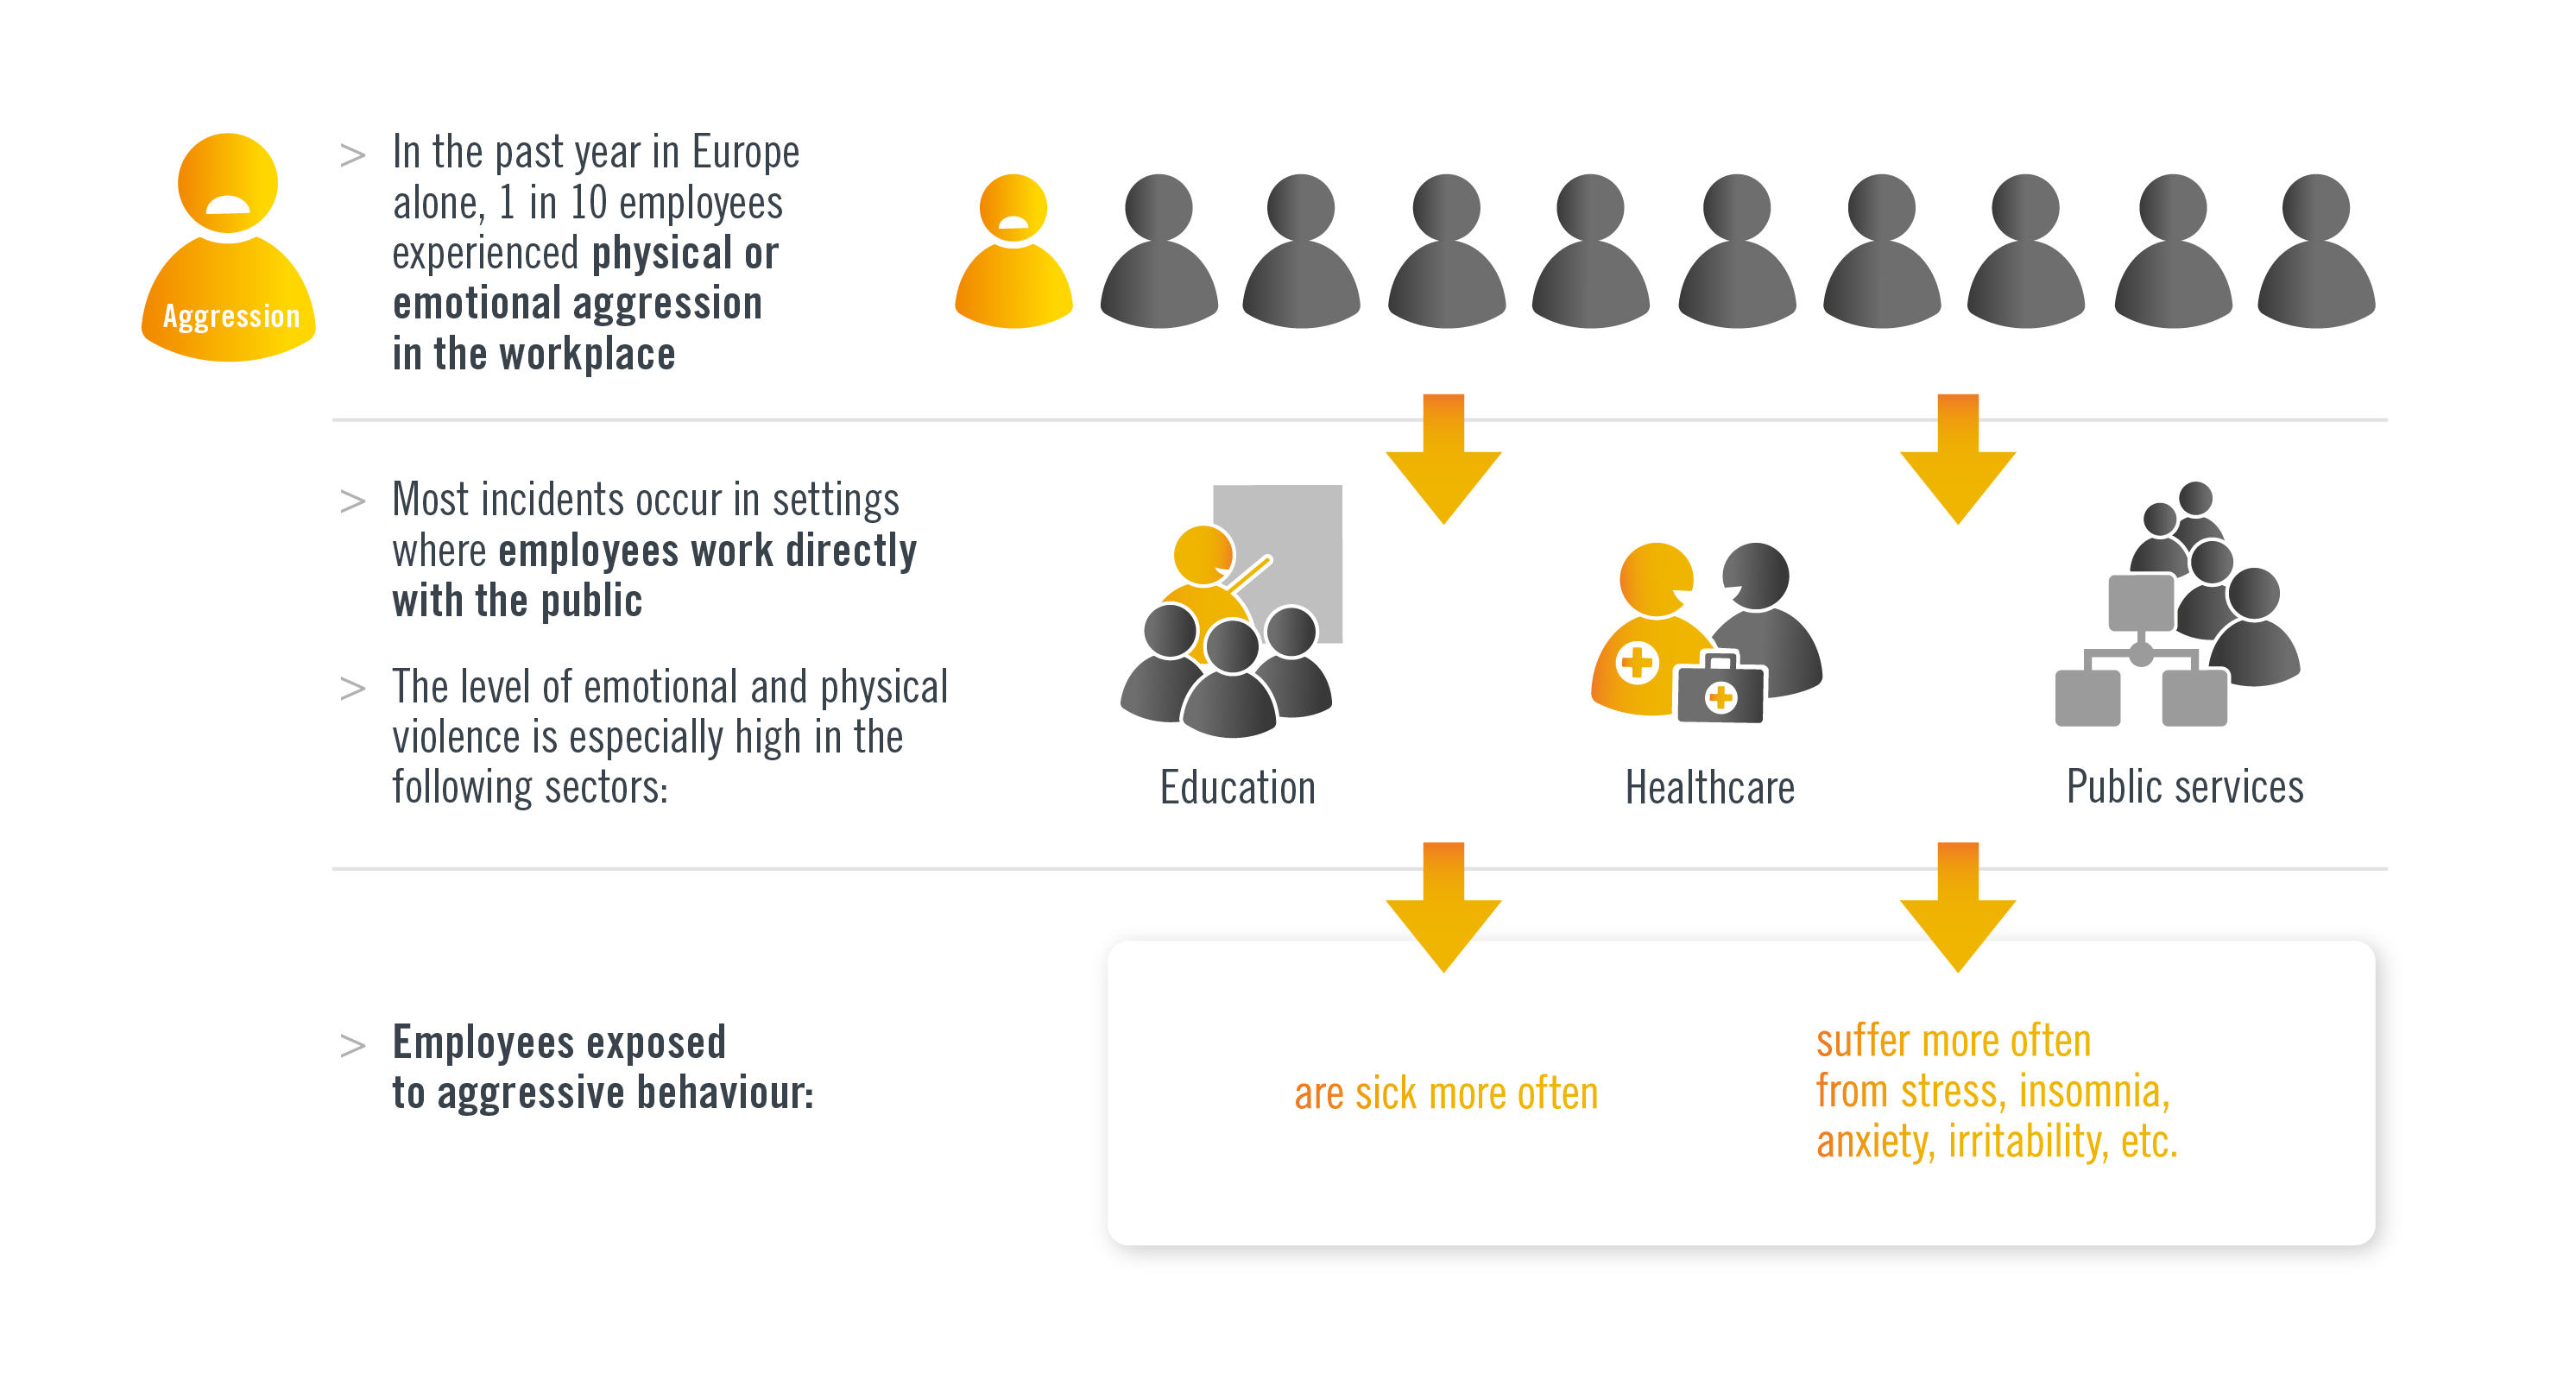 Source: Eurofound report (Van Den Berg, 2010) on workplace aggression